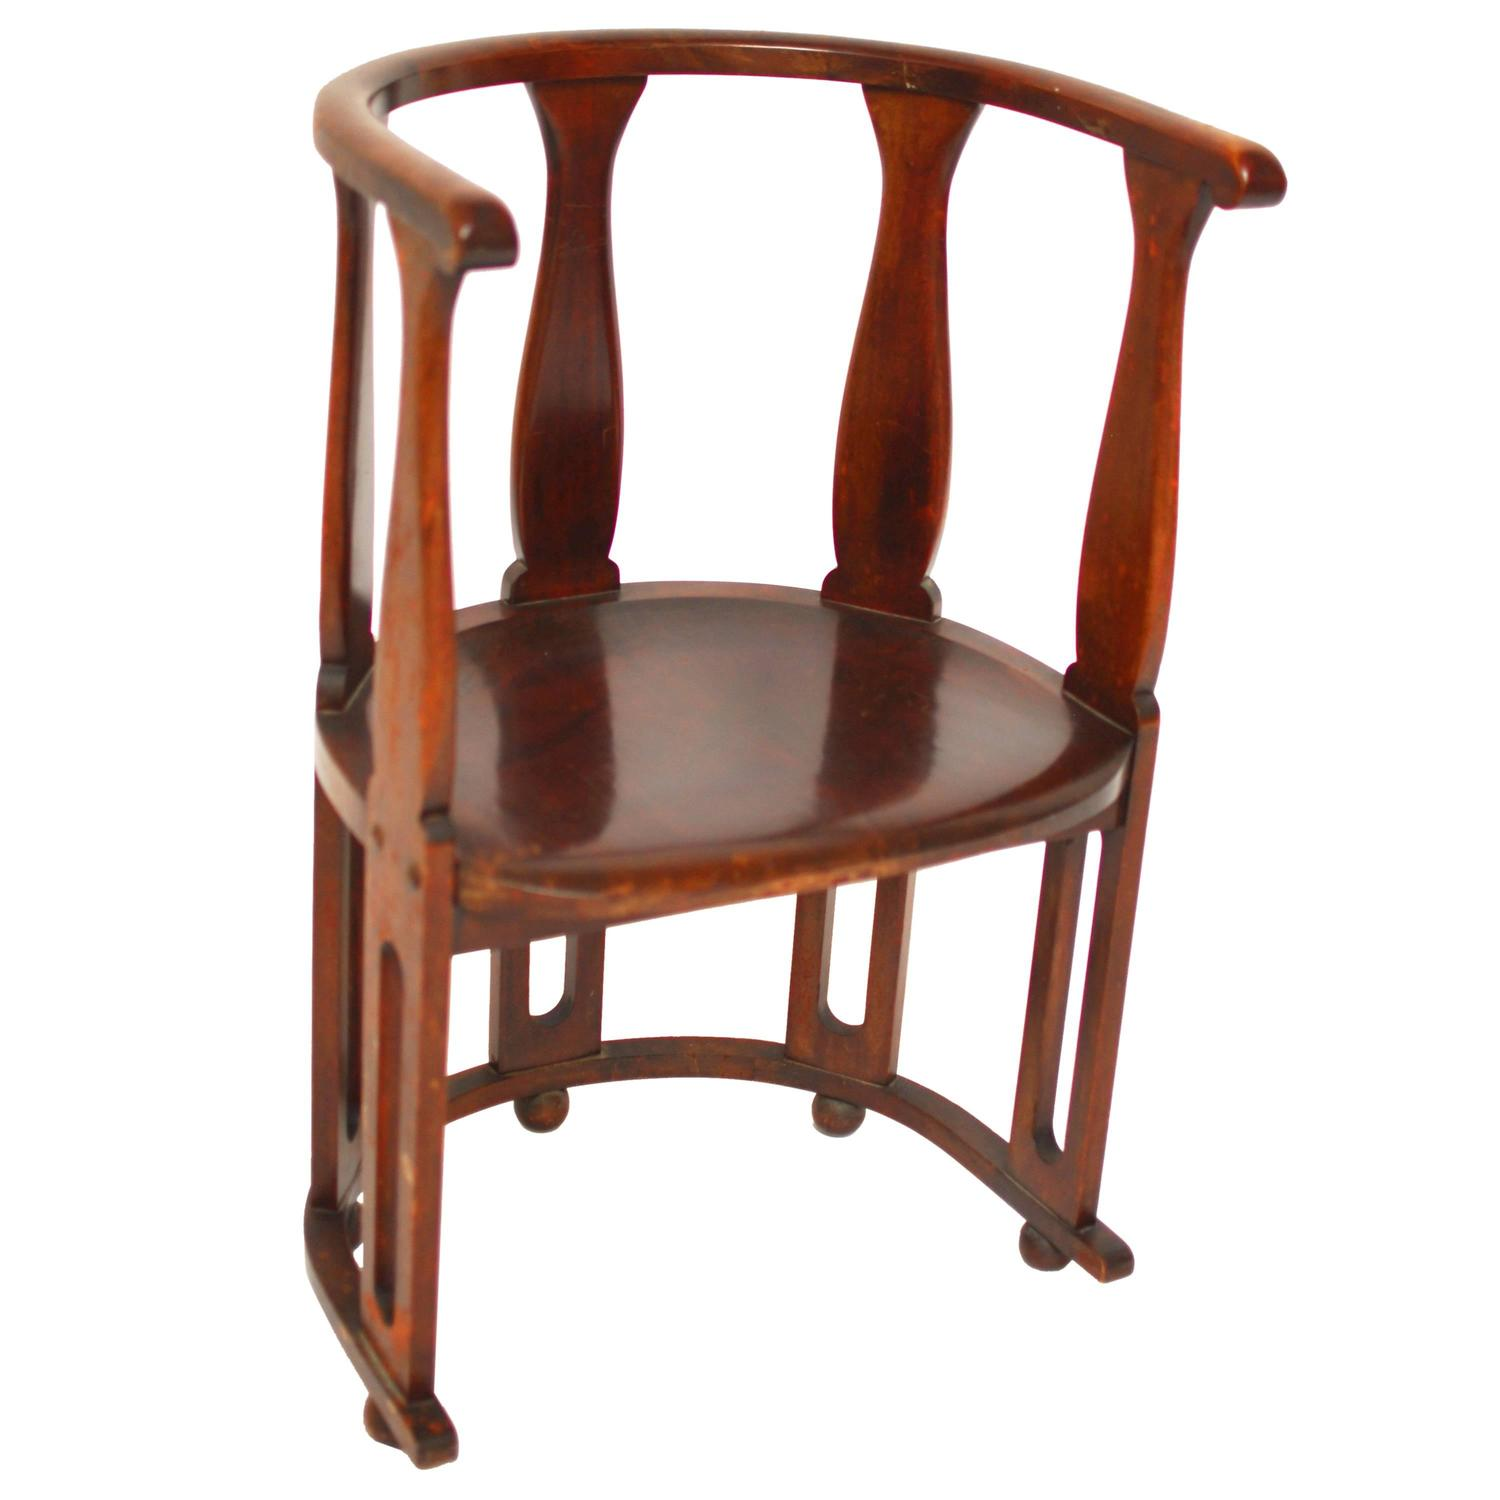 Arts and Crafts High Back Barrel Chair For Sale at 1stdibs